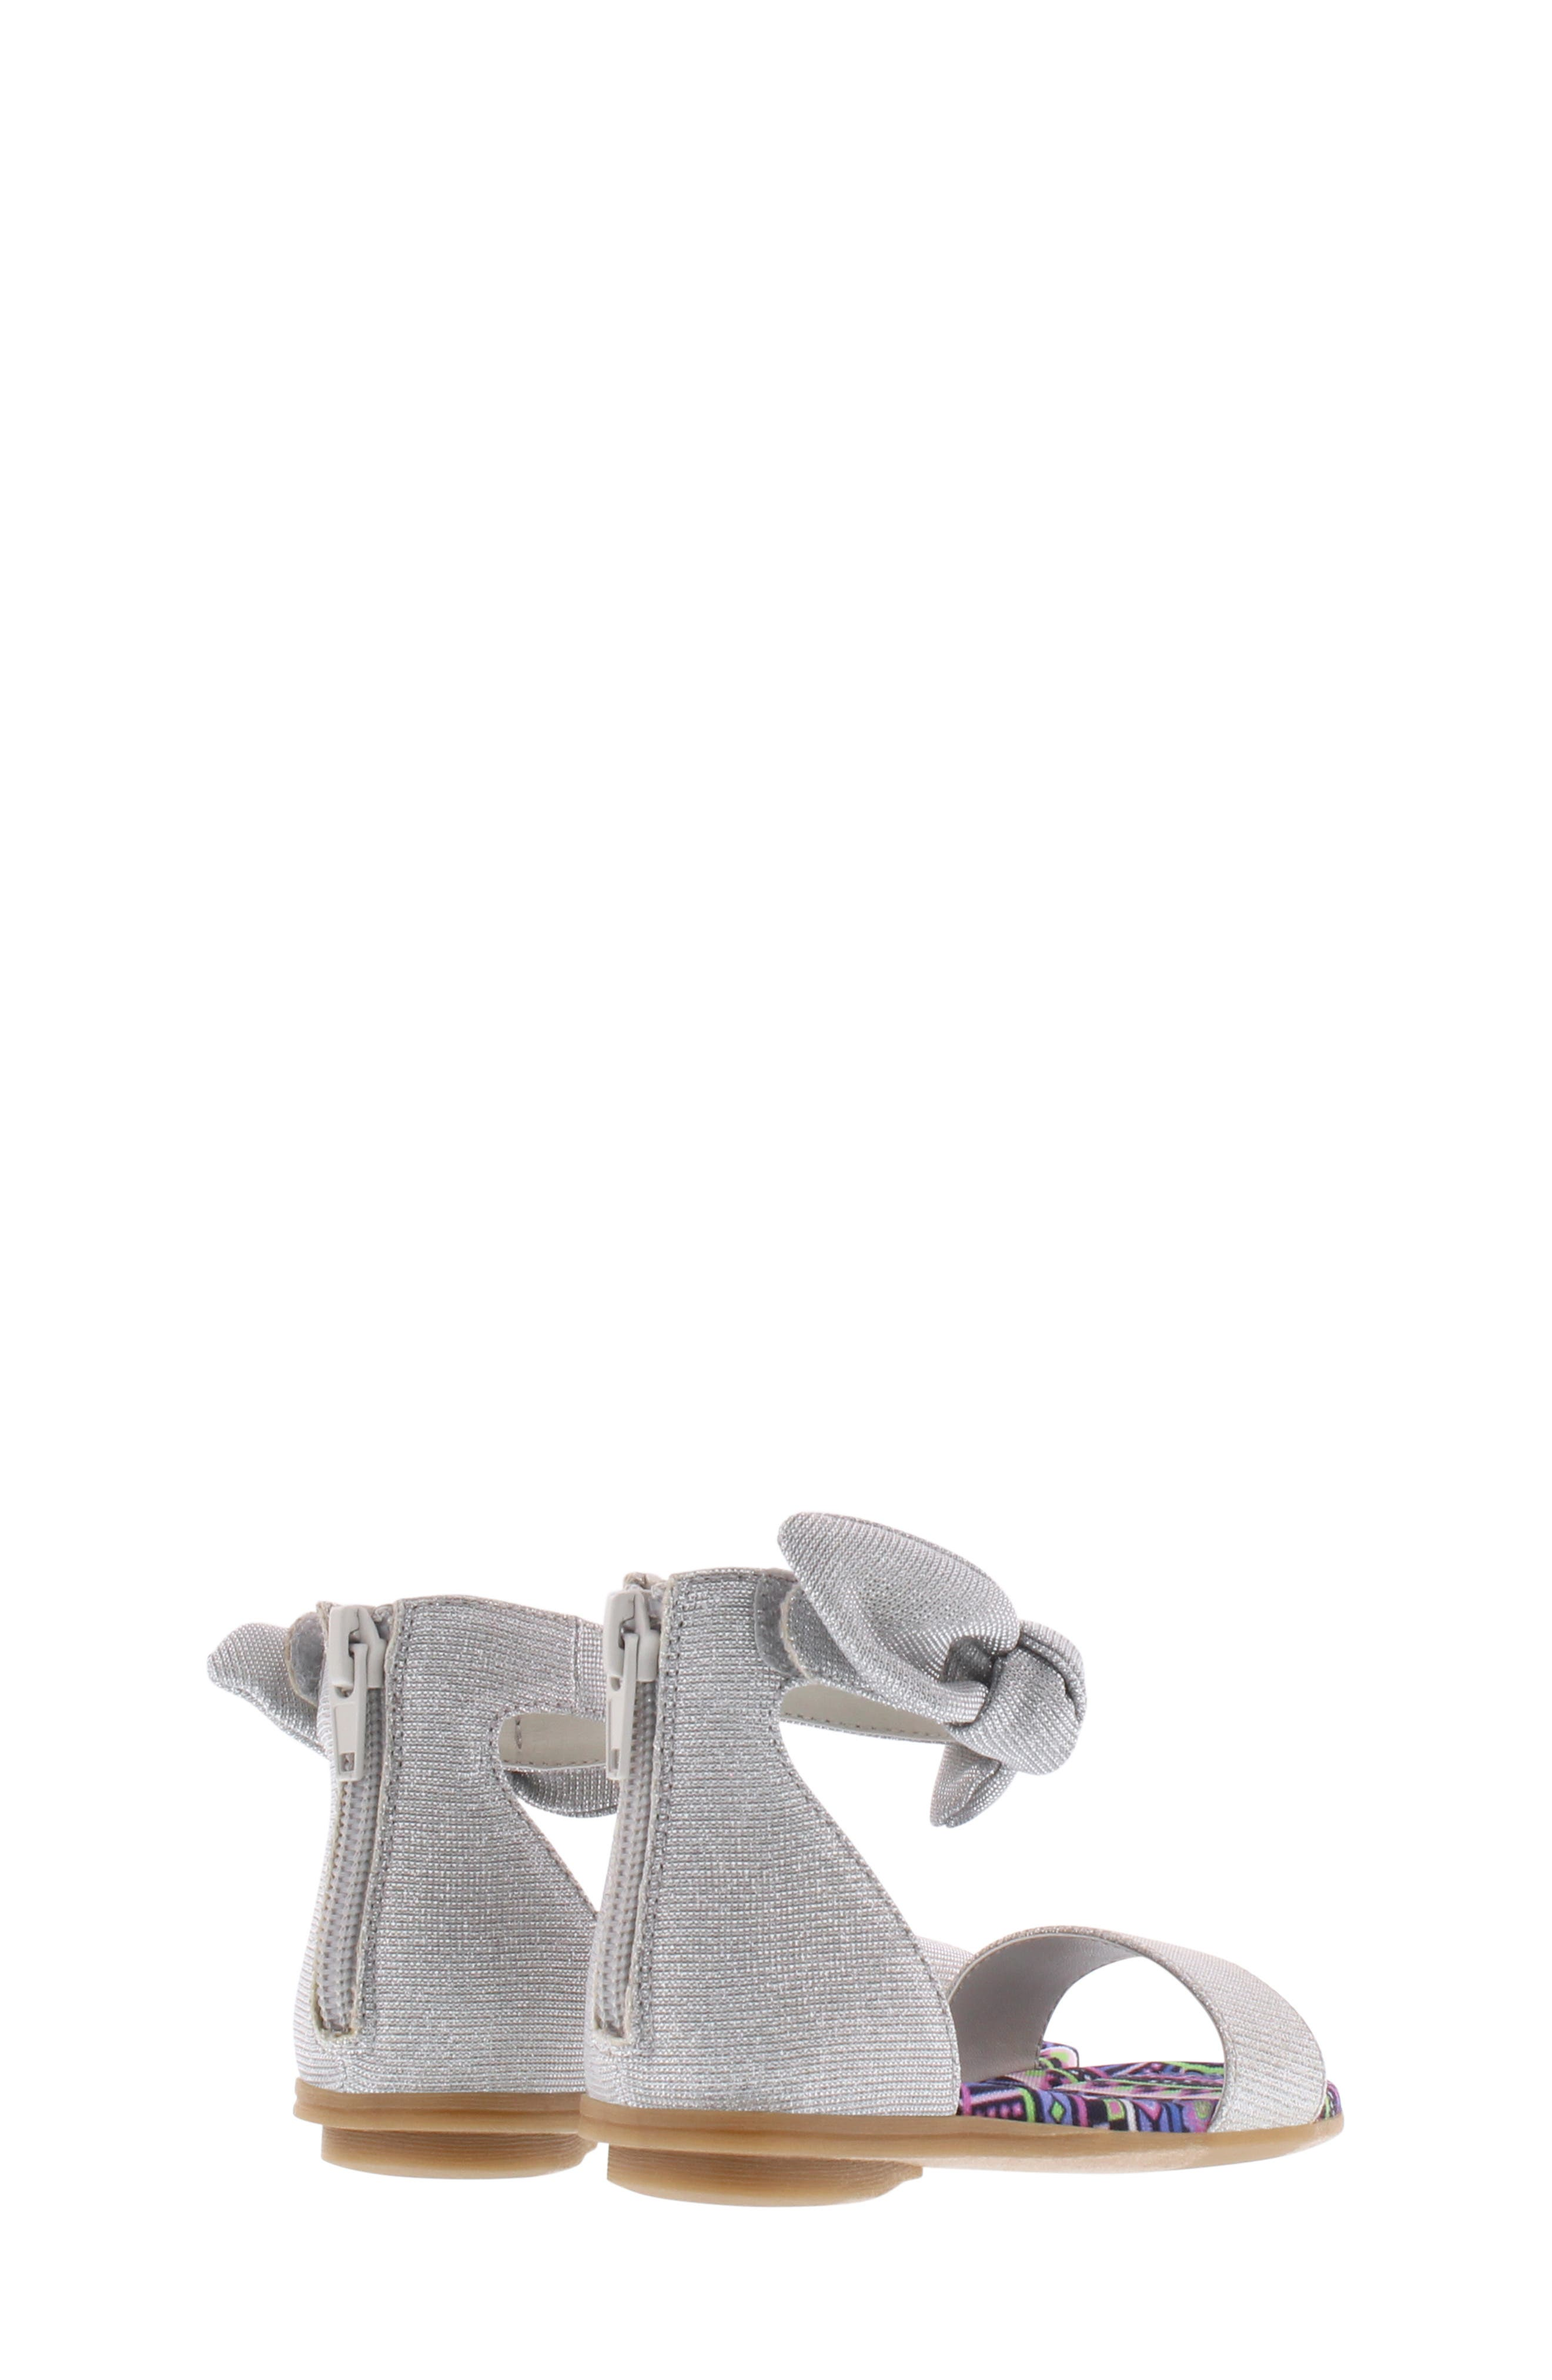 CHOOZE, Bright Daisy Sandal, Alternate thumbnail 2, color, SILVER